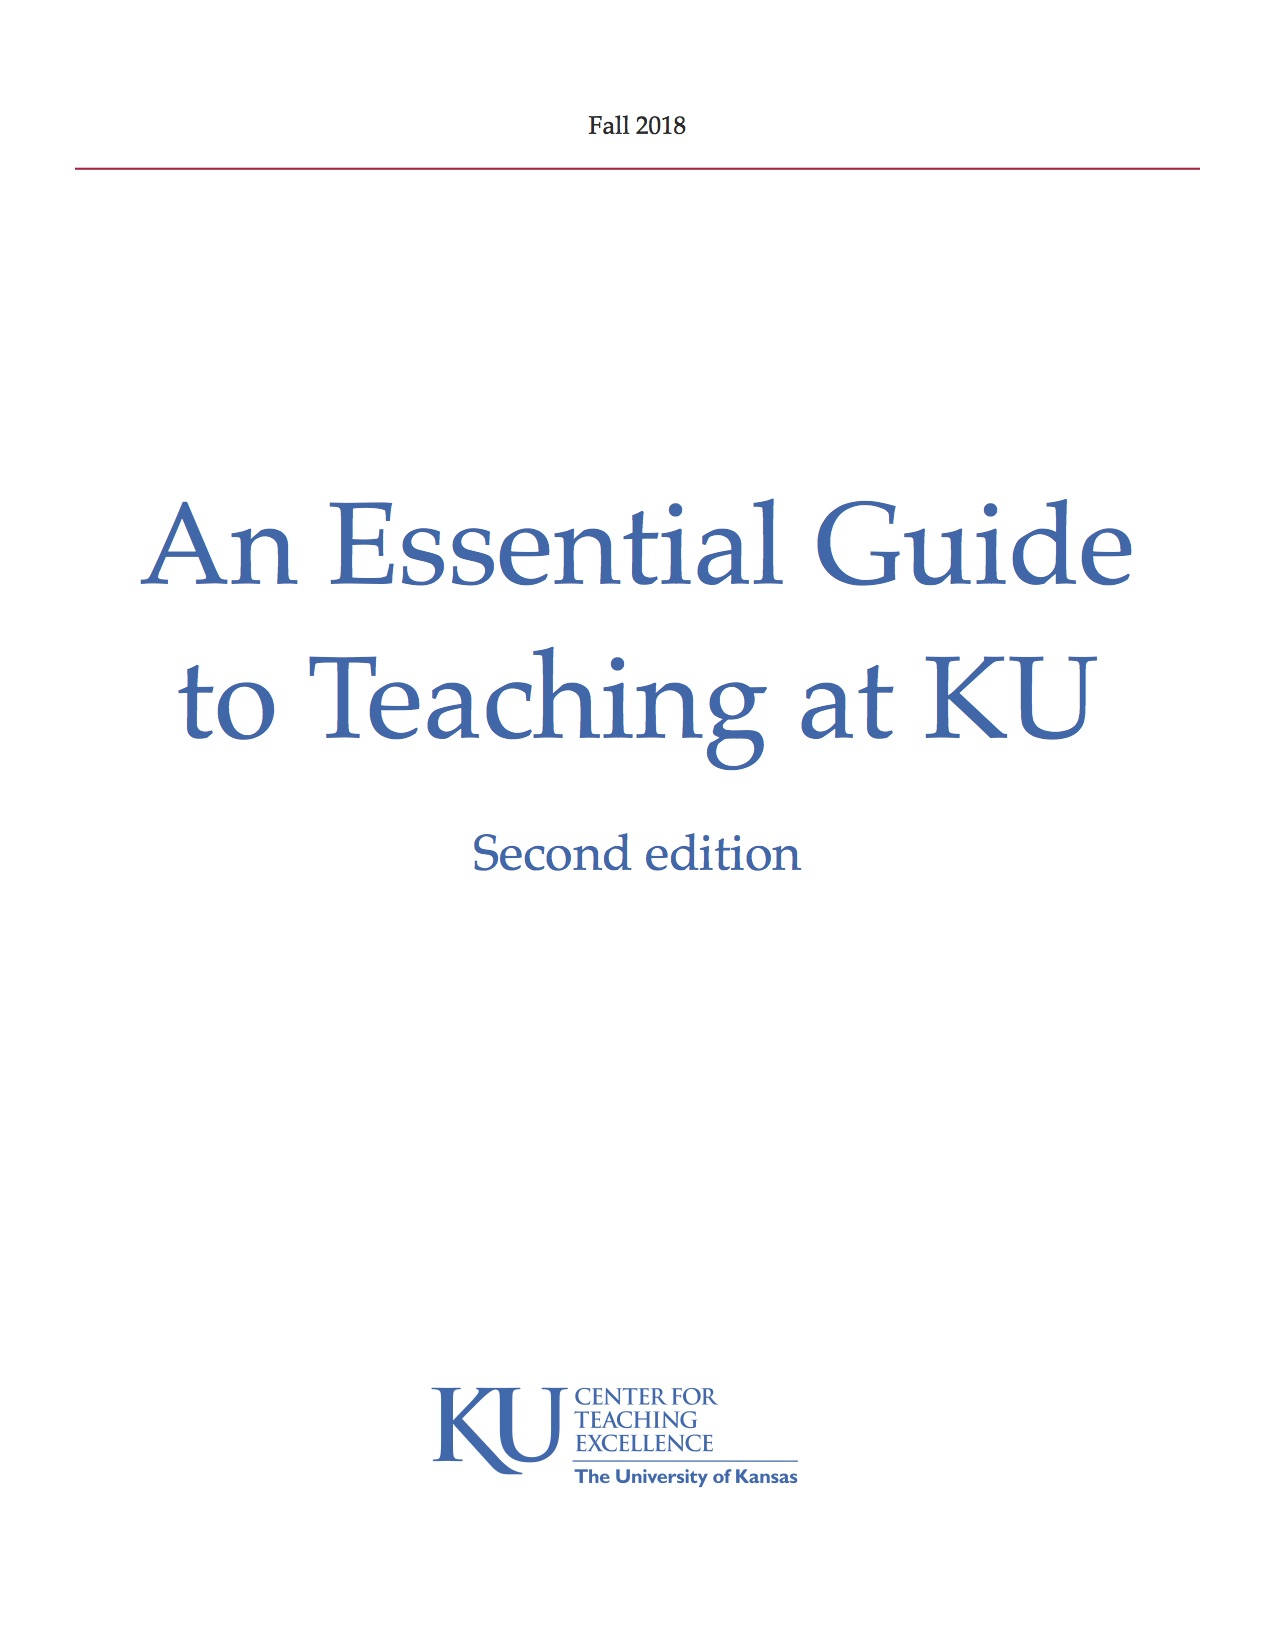 An Essential Guide to Teaching